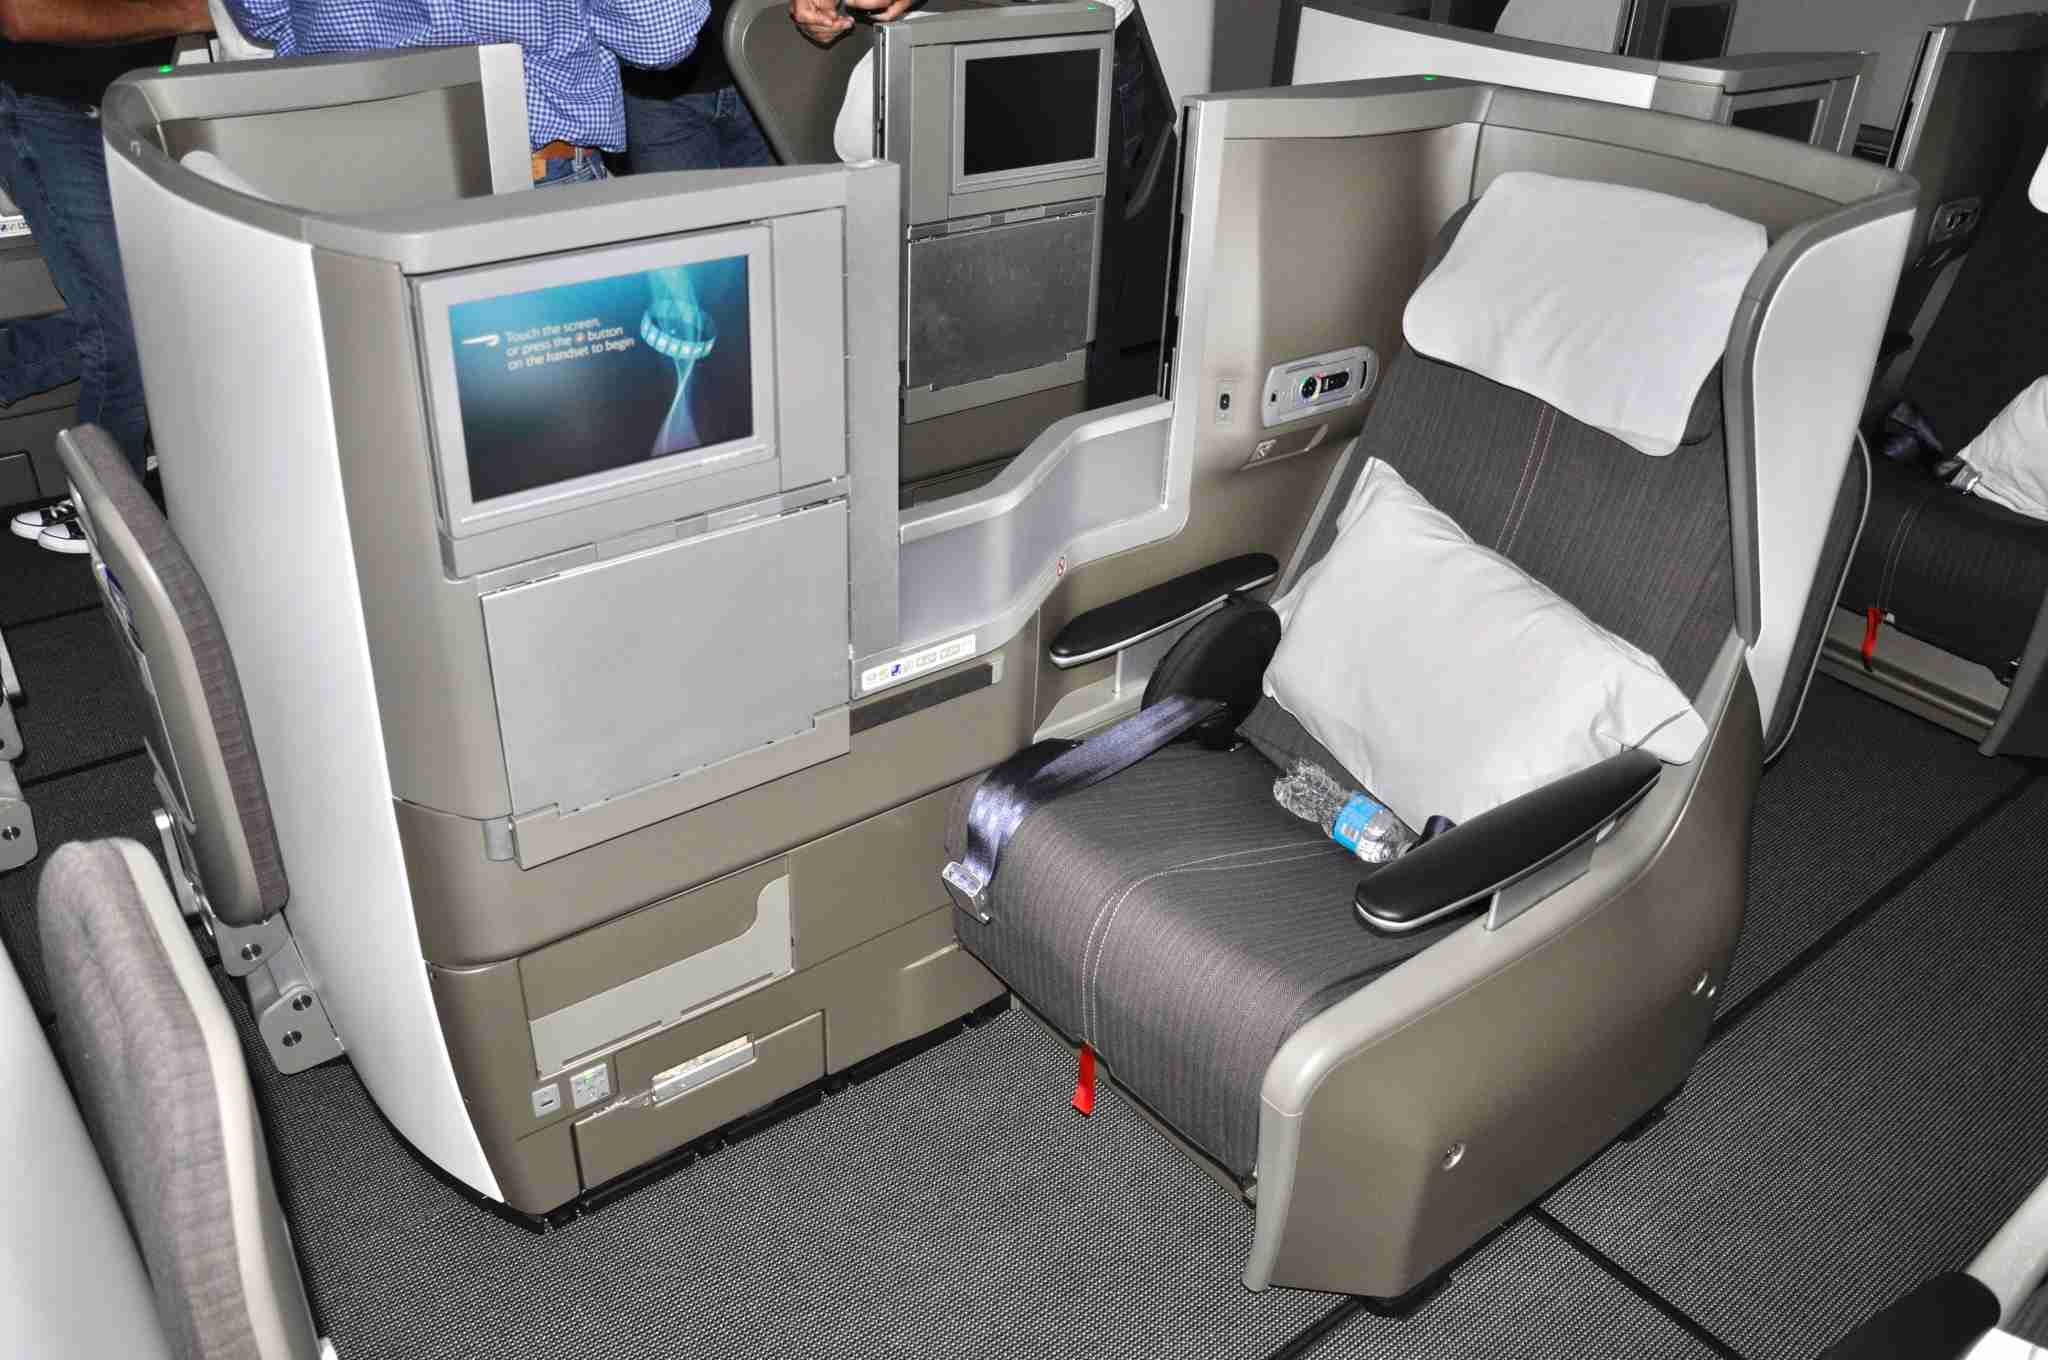 A Club World (business class) seat onboard our delivery flight. Photo by Paul Thompson